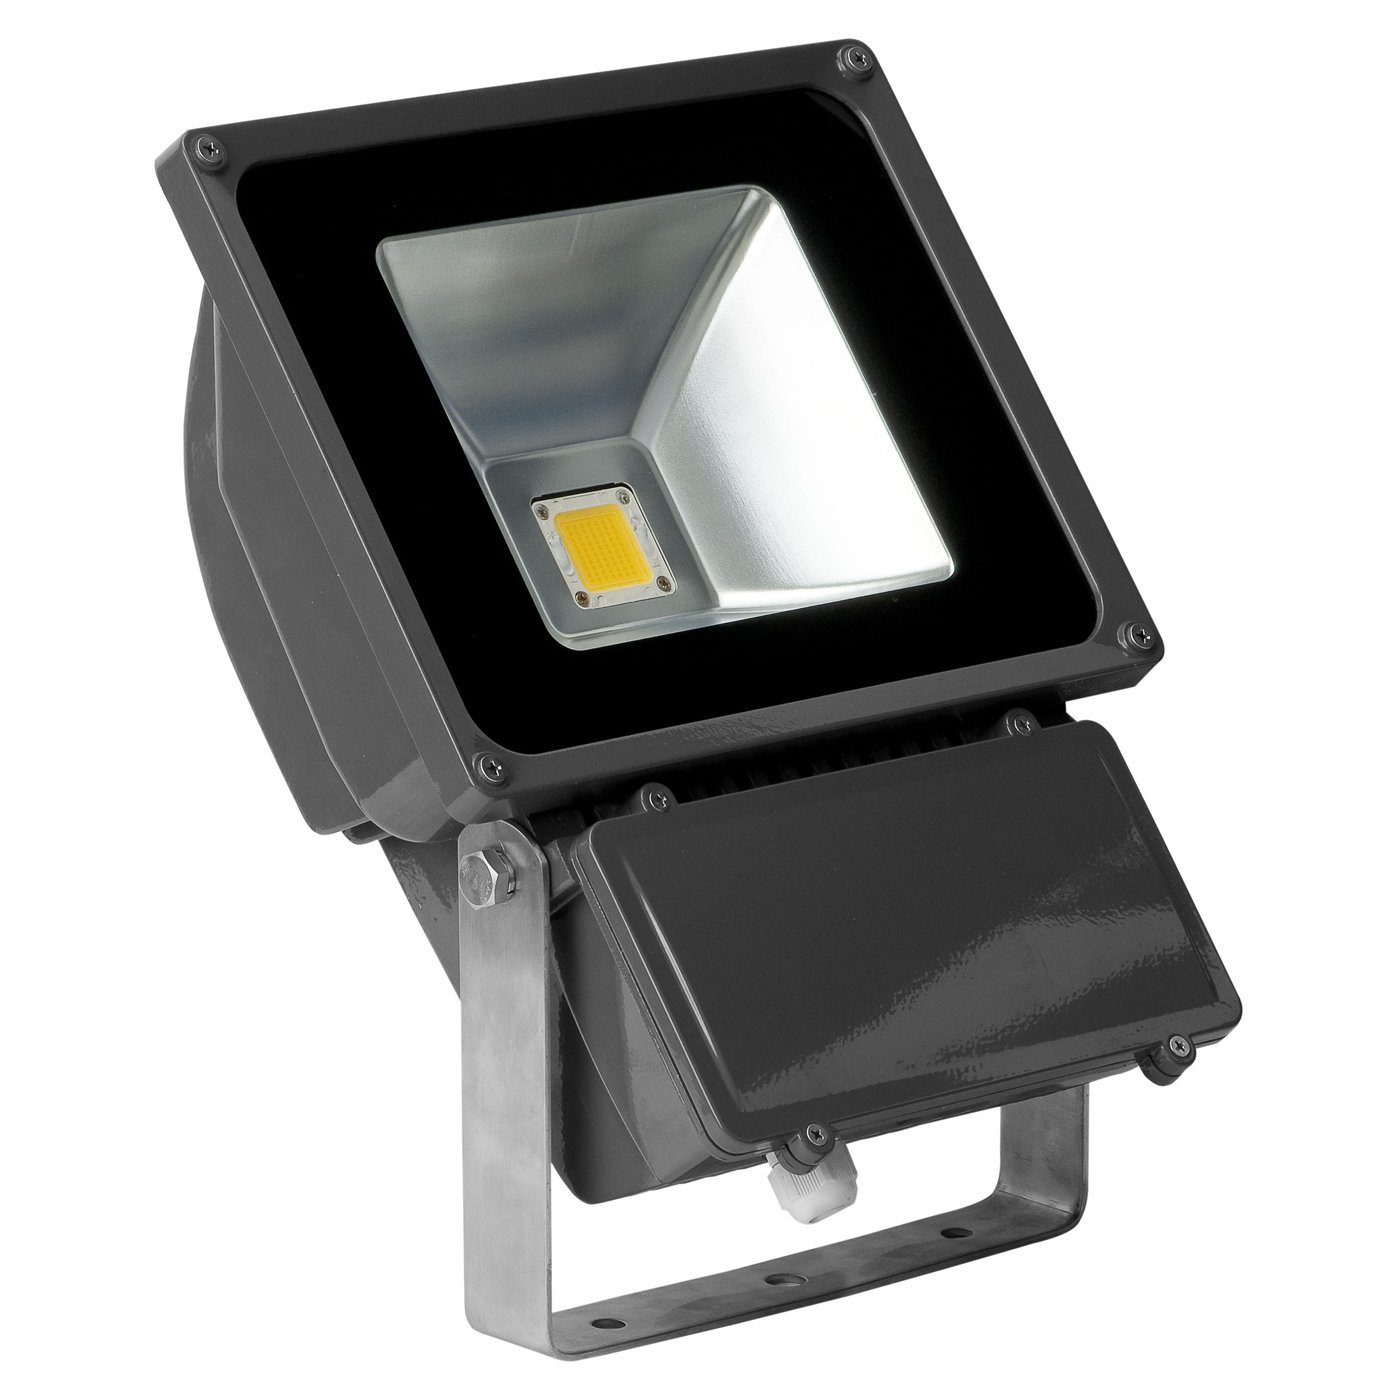 Outdoor Flood Light picture on China 70W LED Flood Light with Outdoor Flood Light, Outdoor Lighting ideas 0379b86902c34a9281d793eafea993bb